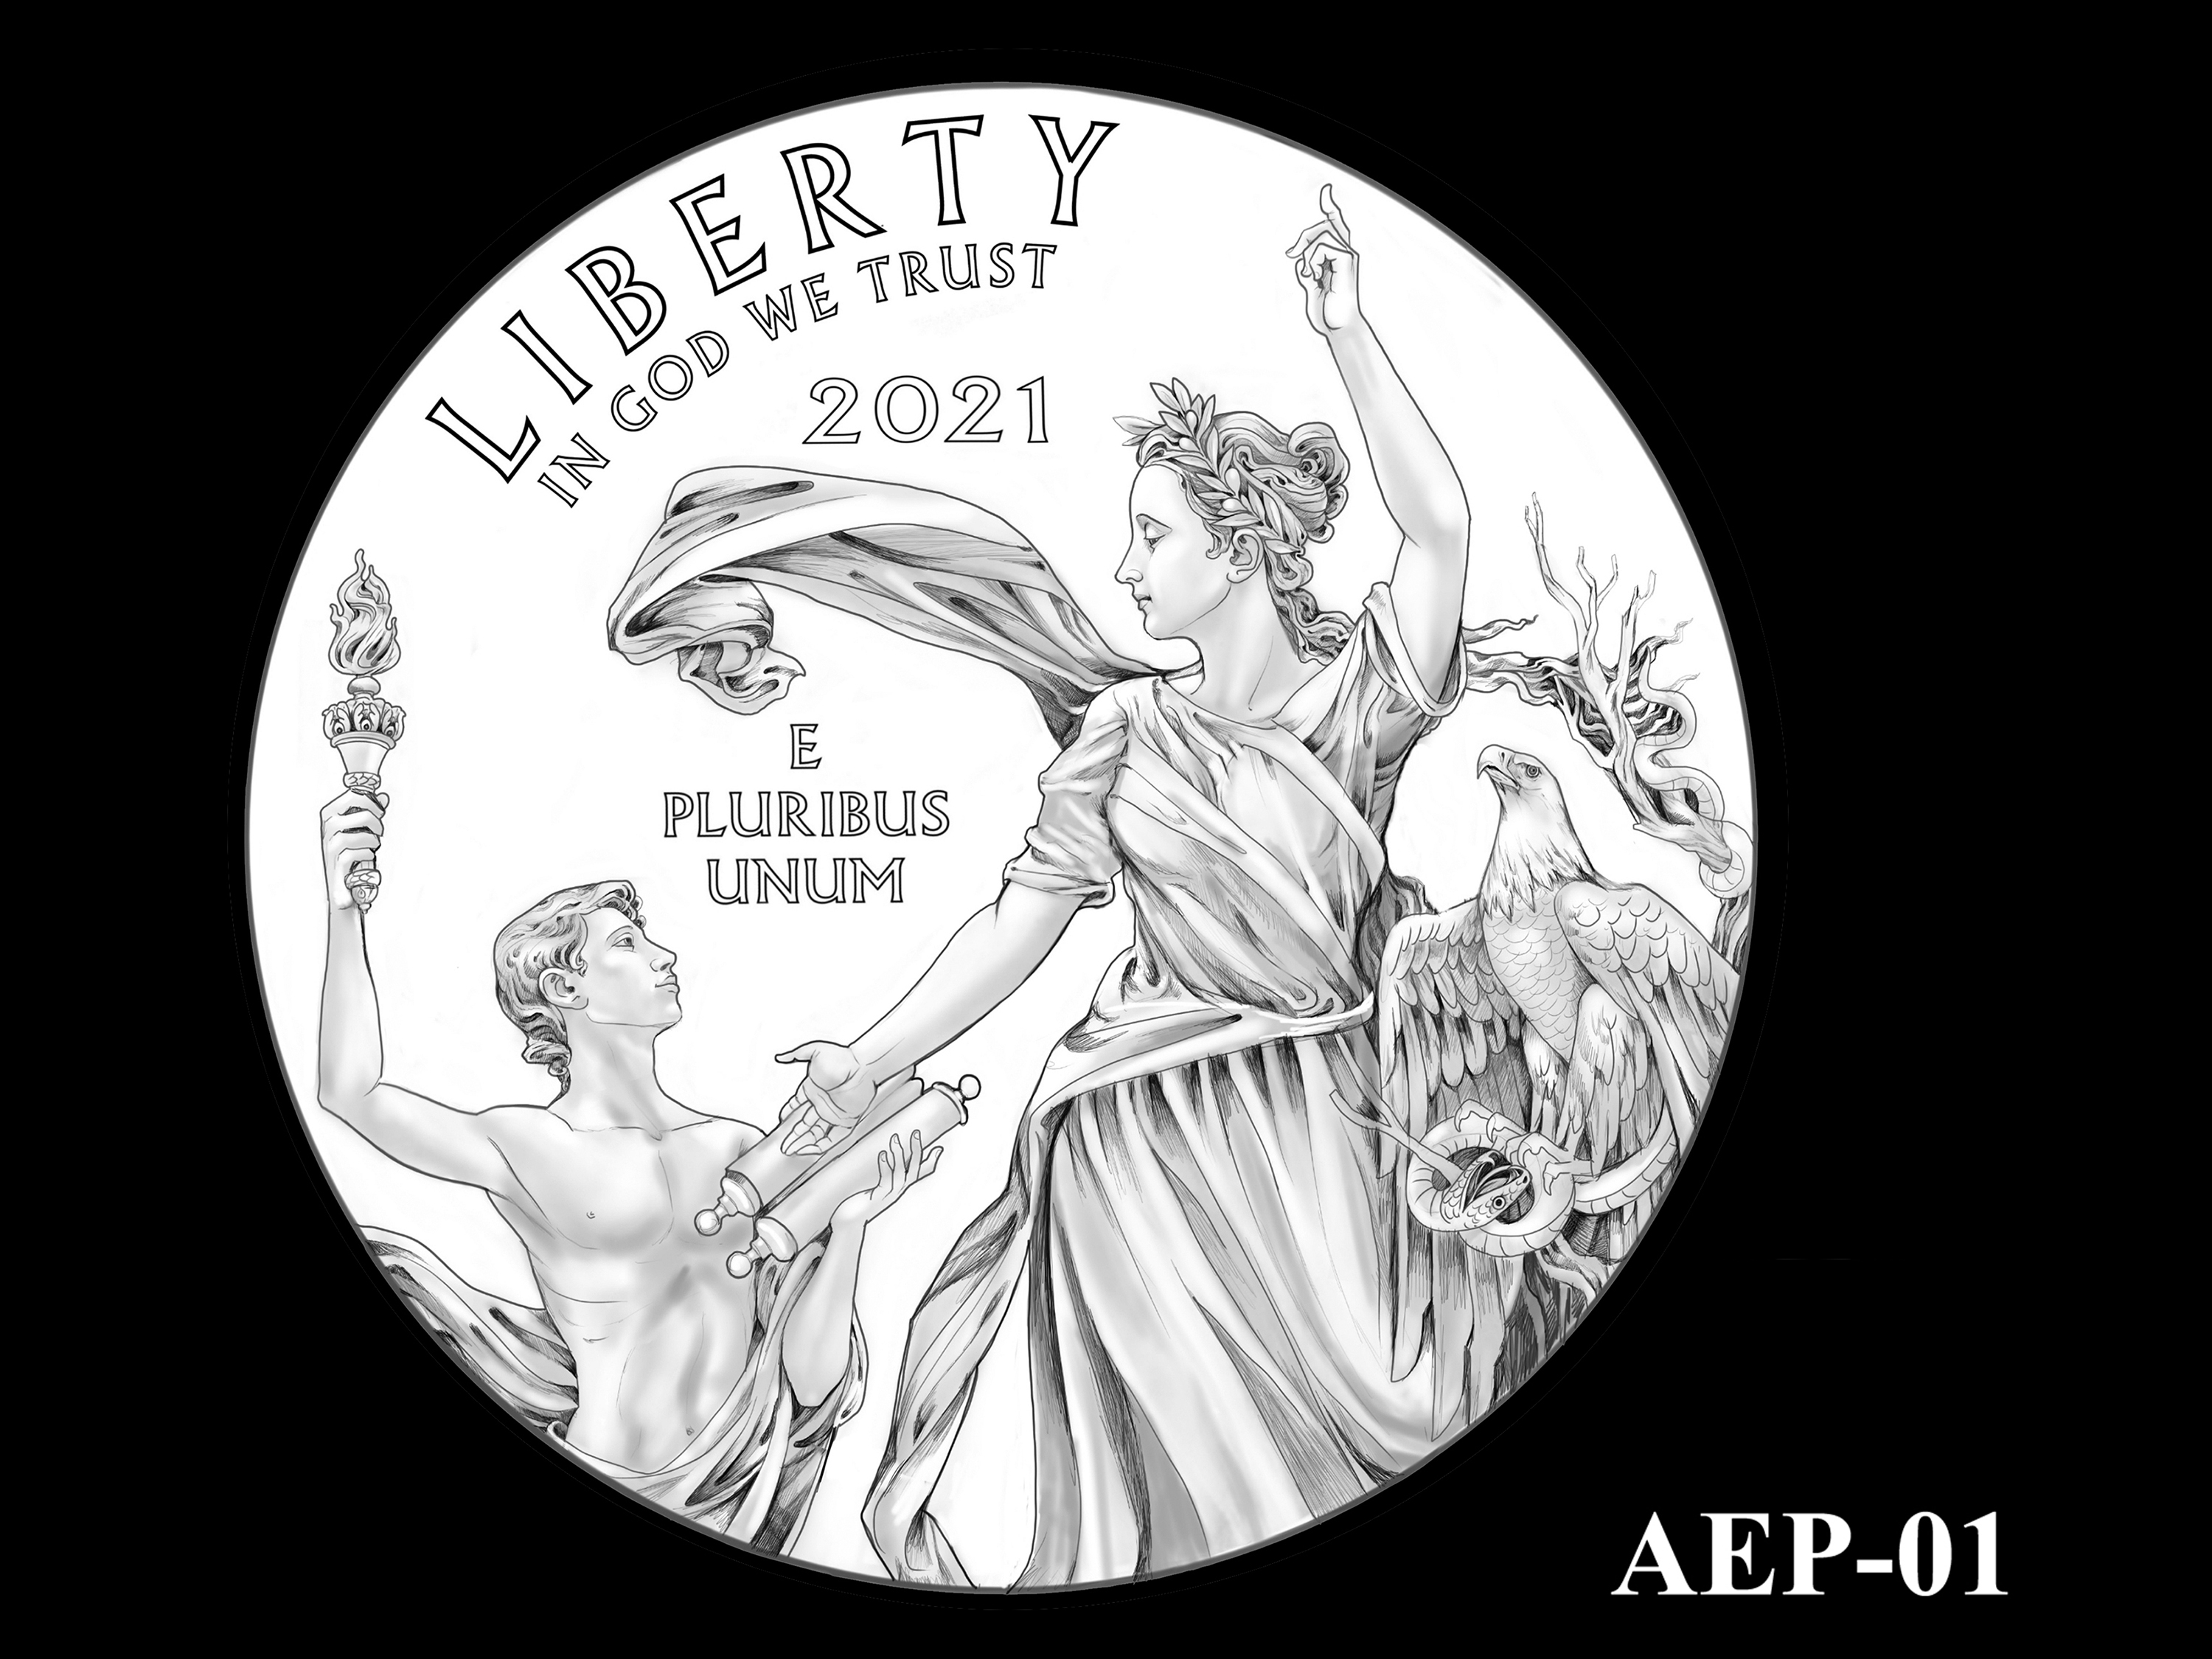 AEP-01 -- 2021 American Eagle Platinum Proof Program